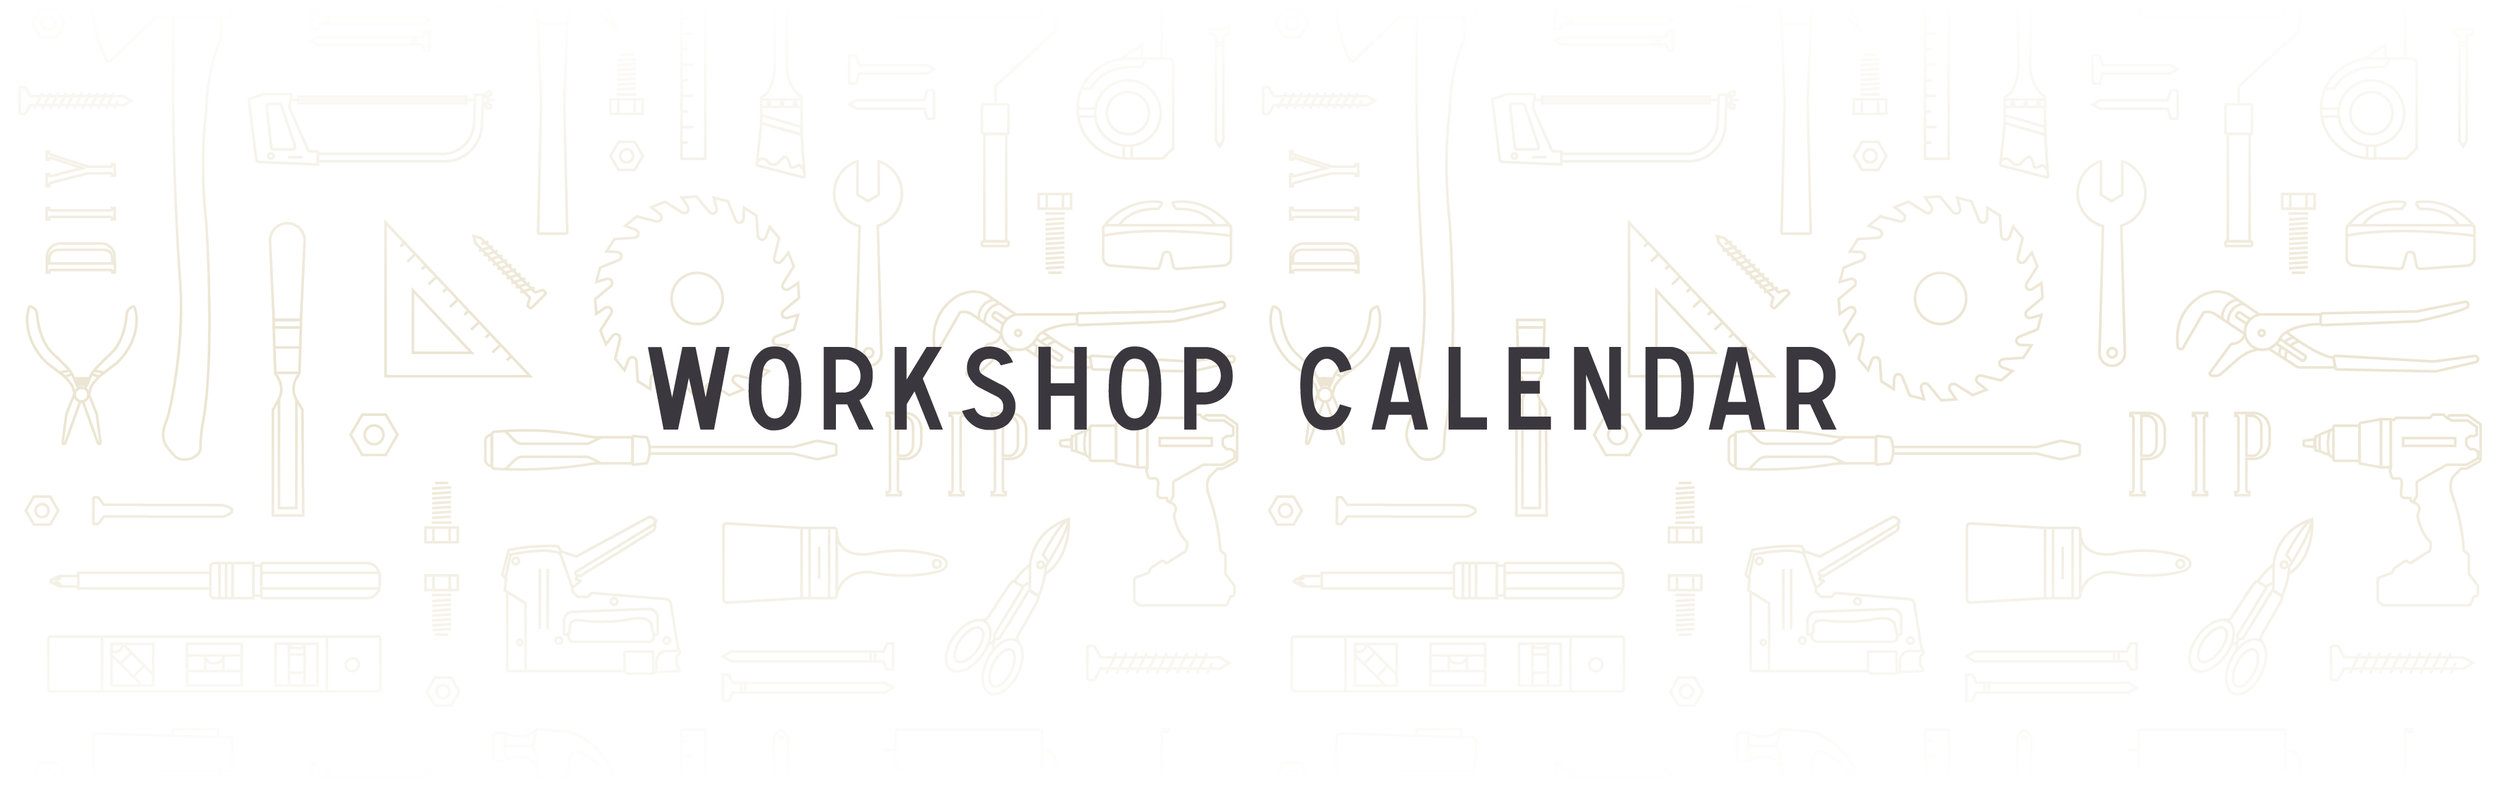 workshopcalendar.jpg